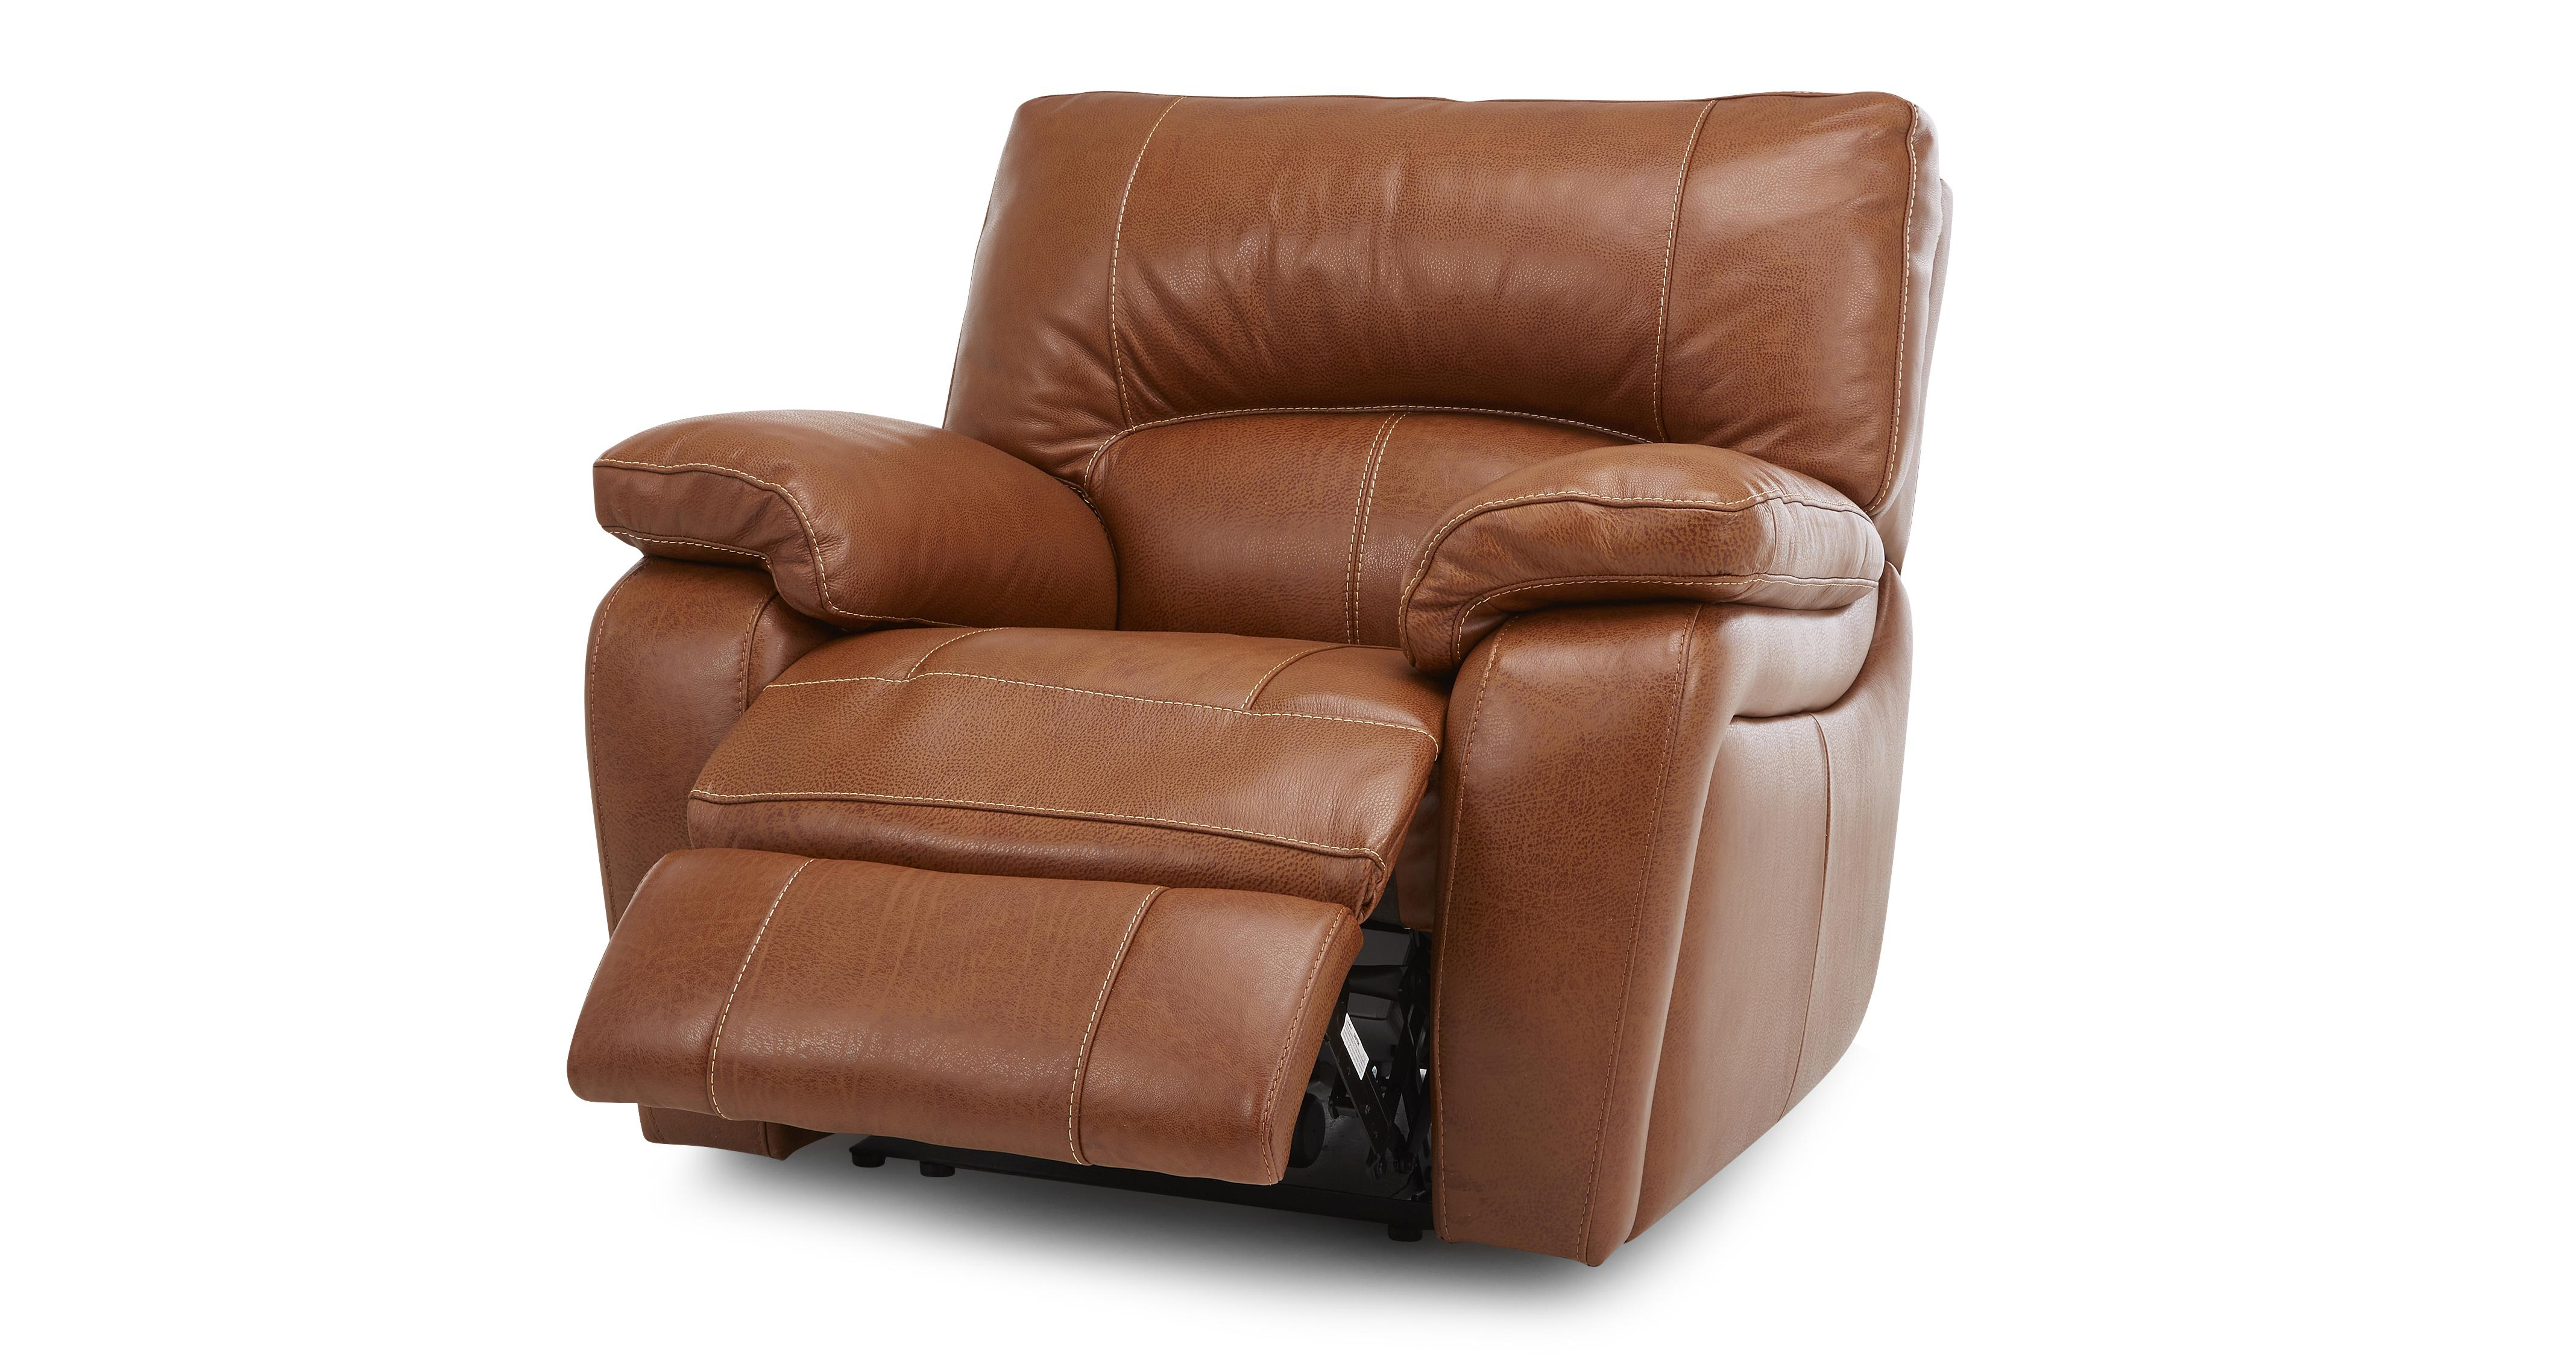 Reward Leather Manual Recliner Chair Brazil Contrast